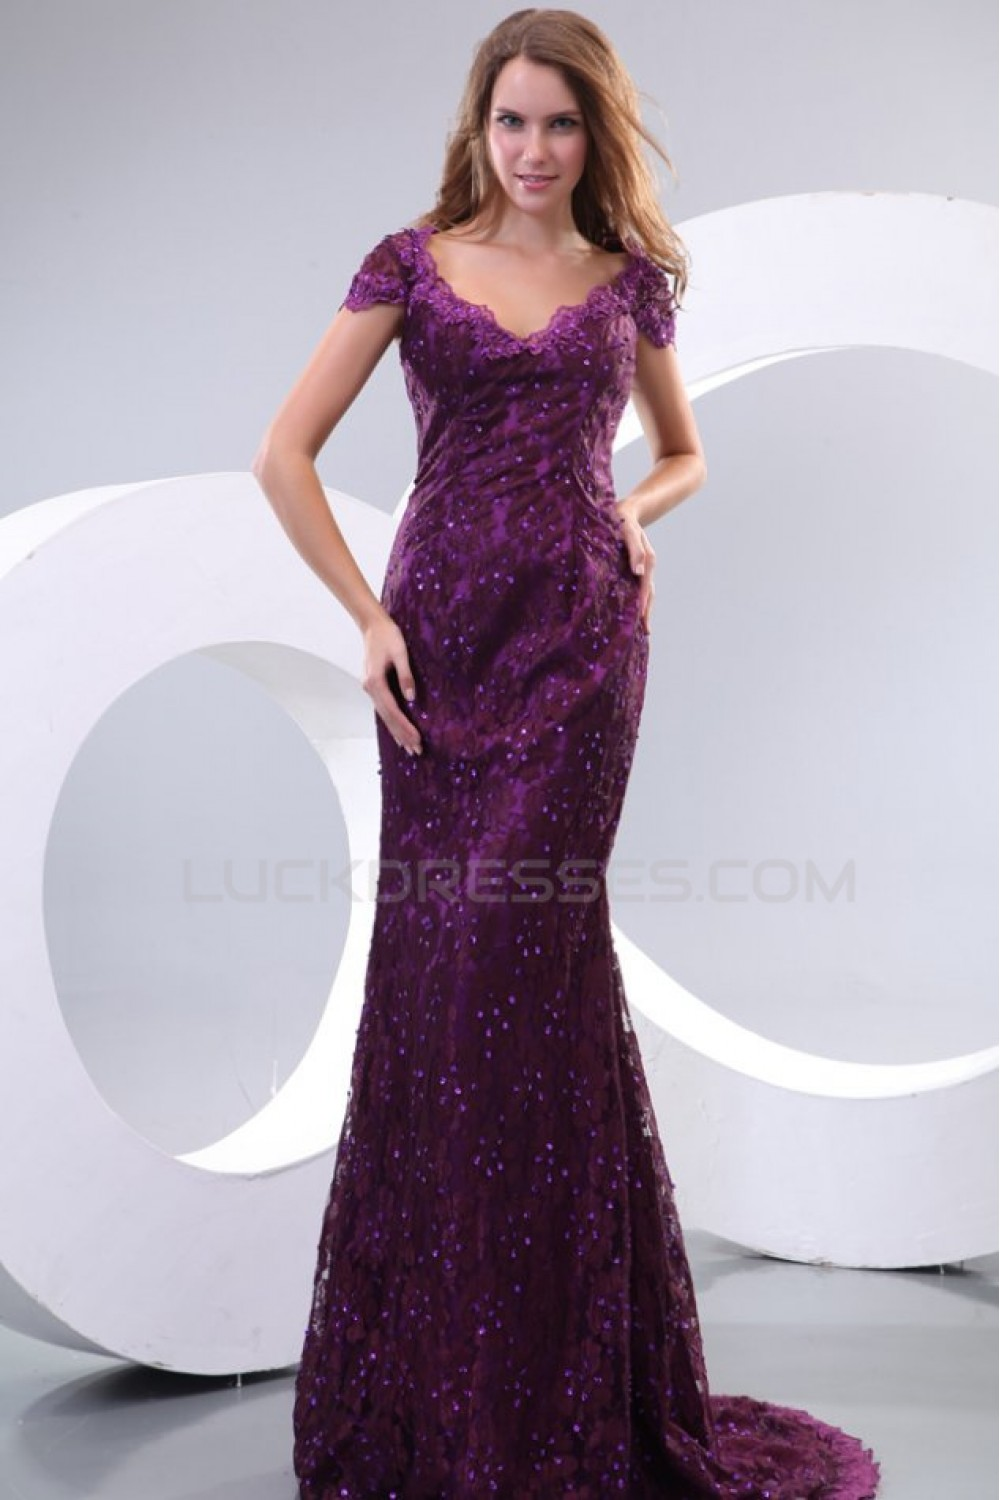 7955ac250c654 Trumpet/Mermaid Long Purple Lace Prom Evening Formal Party ...